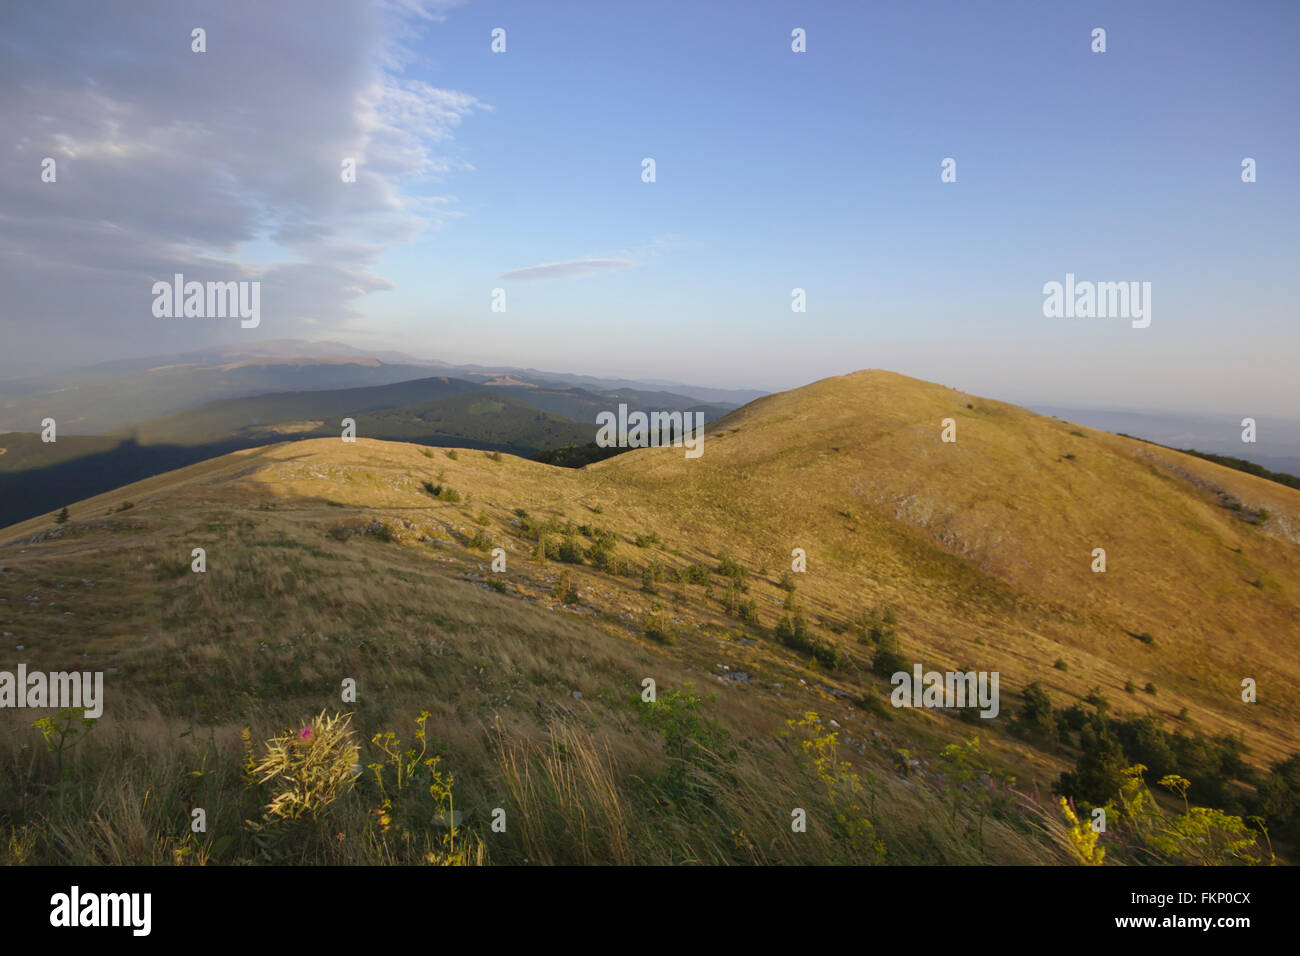 View from Mount Buzludzha in morning light, Central Balkans, Bulgaria - Stock Image